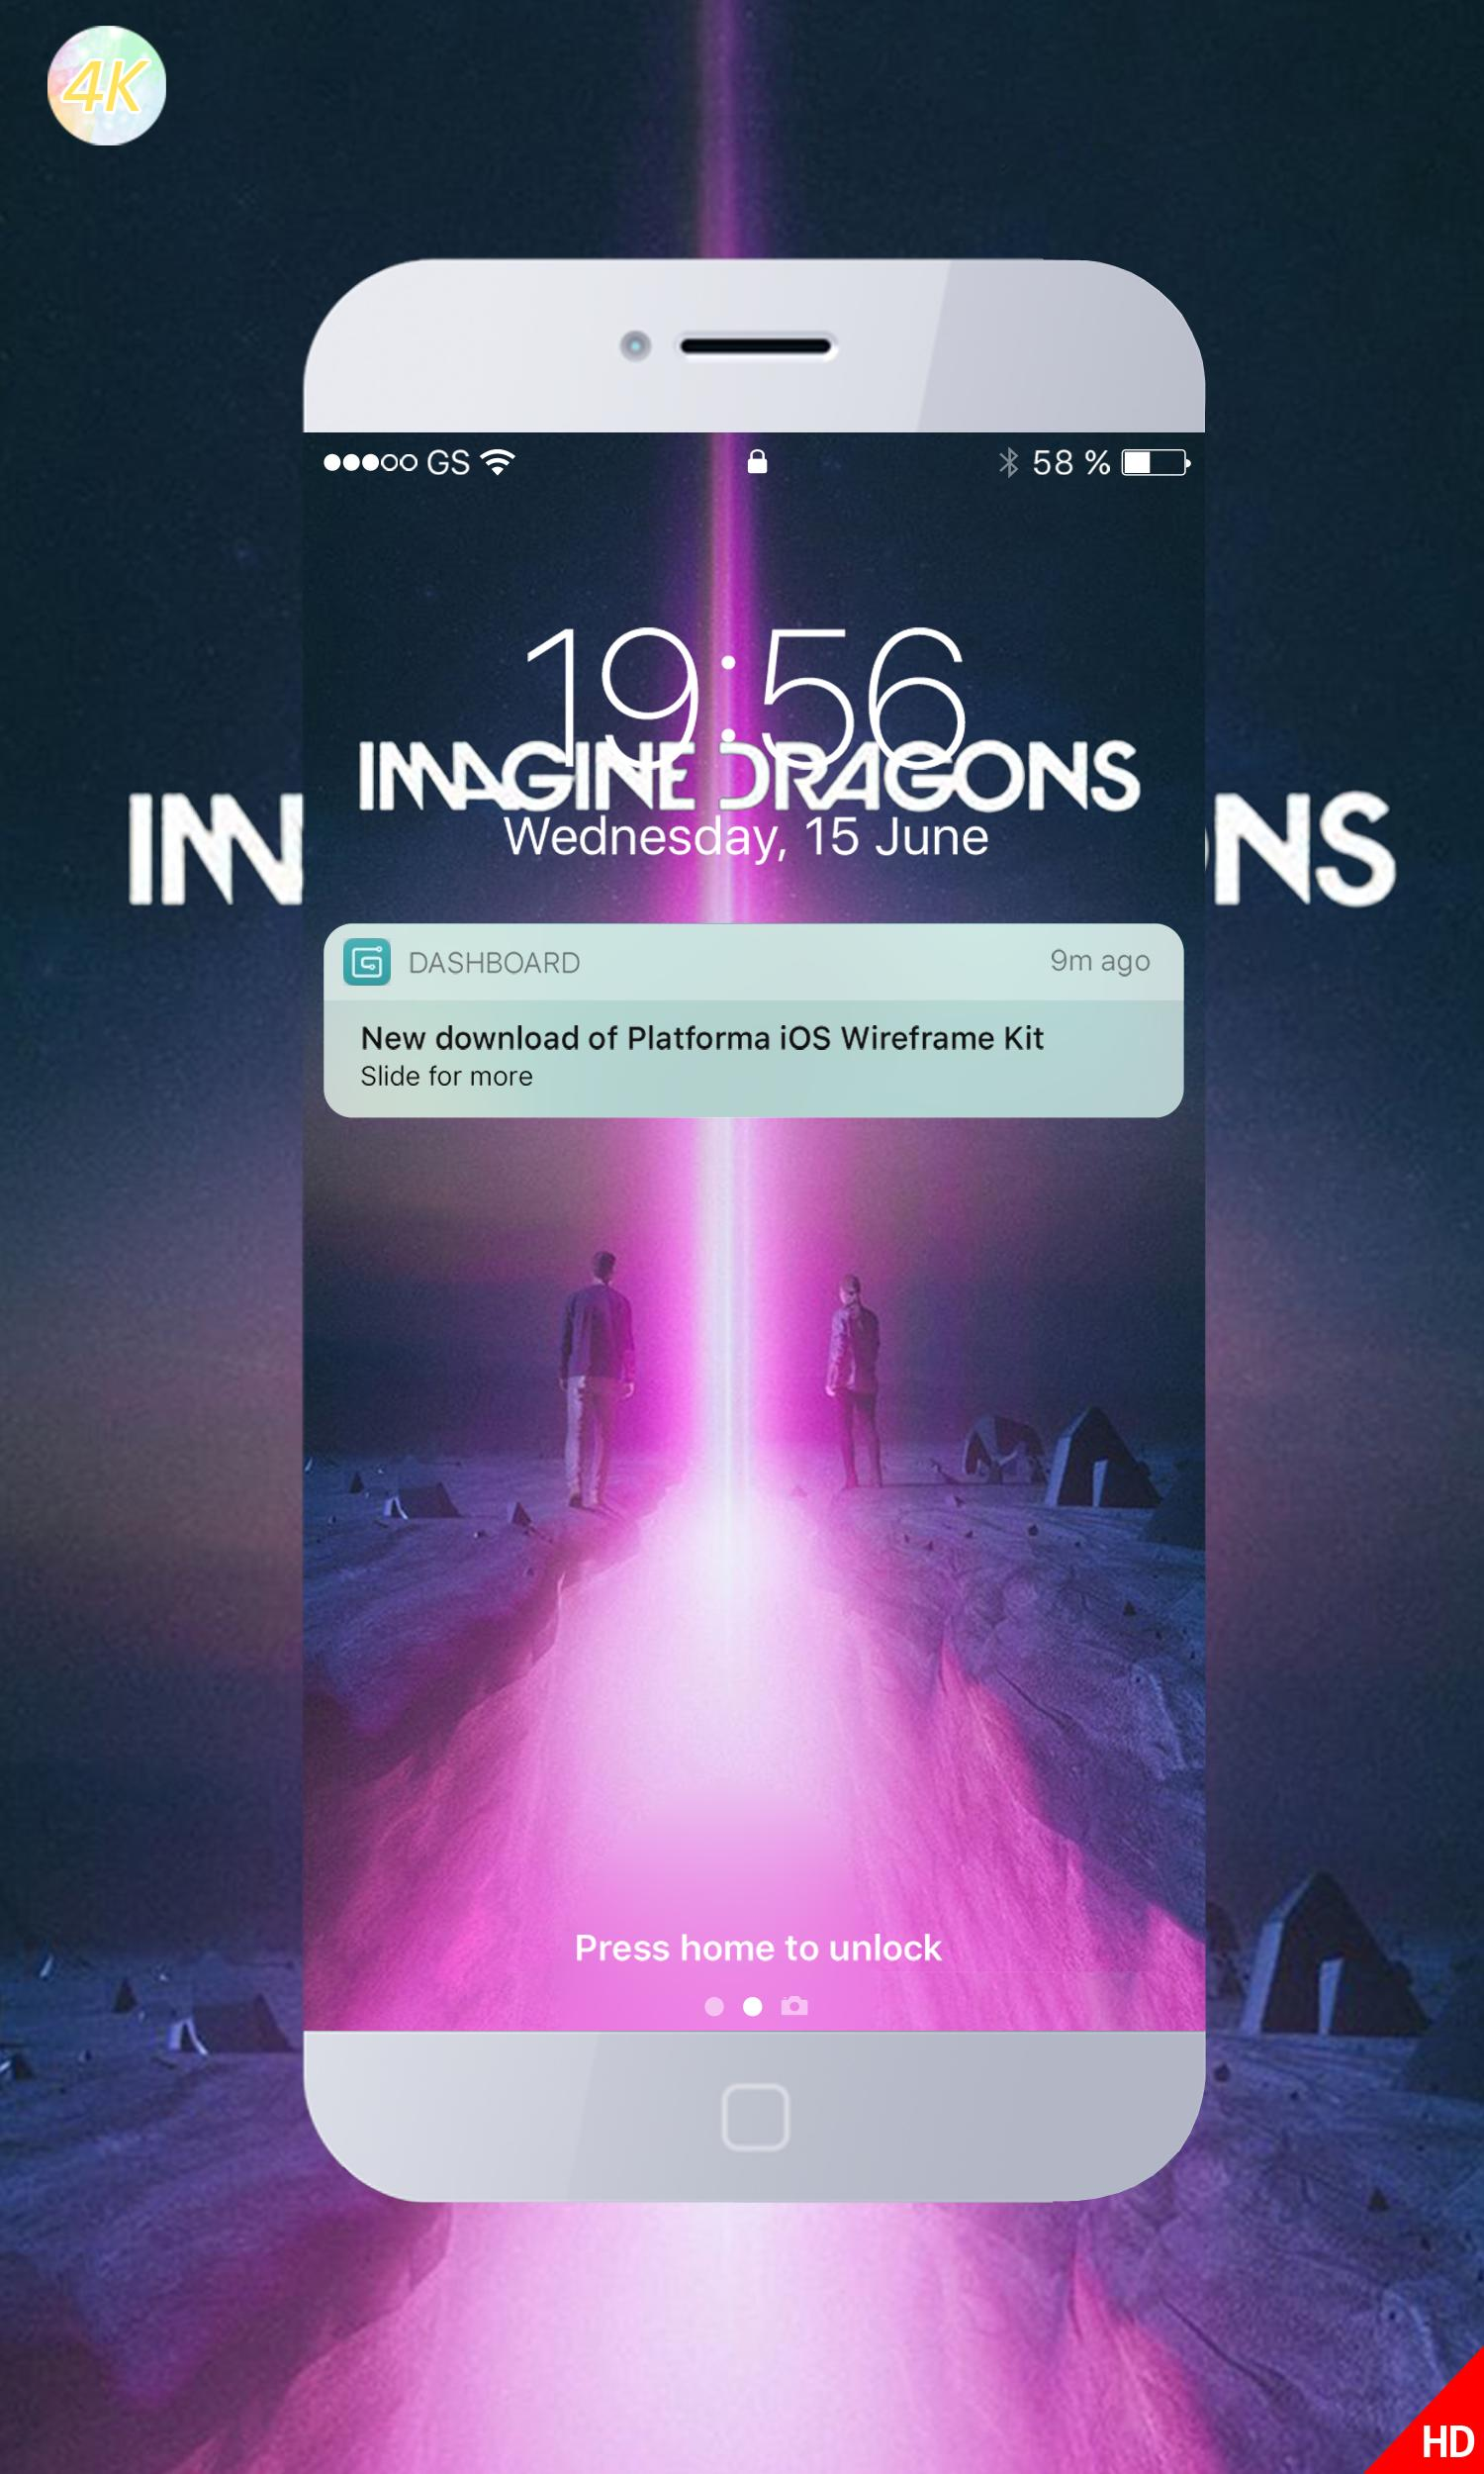 Imagine Dragons Wallpapers For Android Apk Download